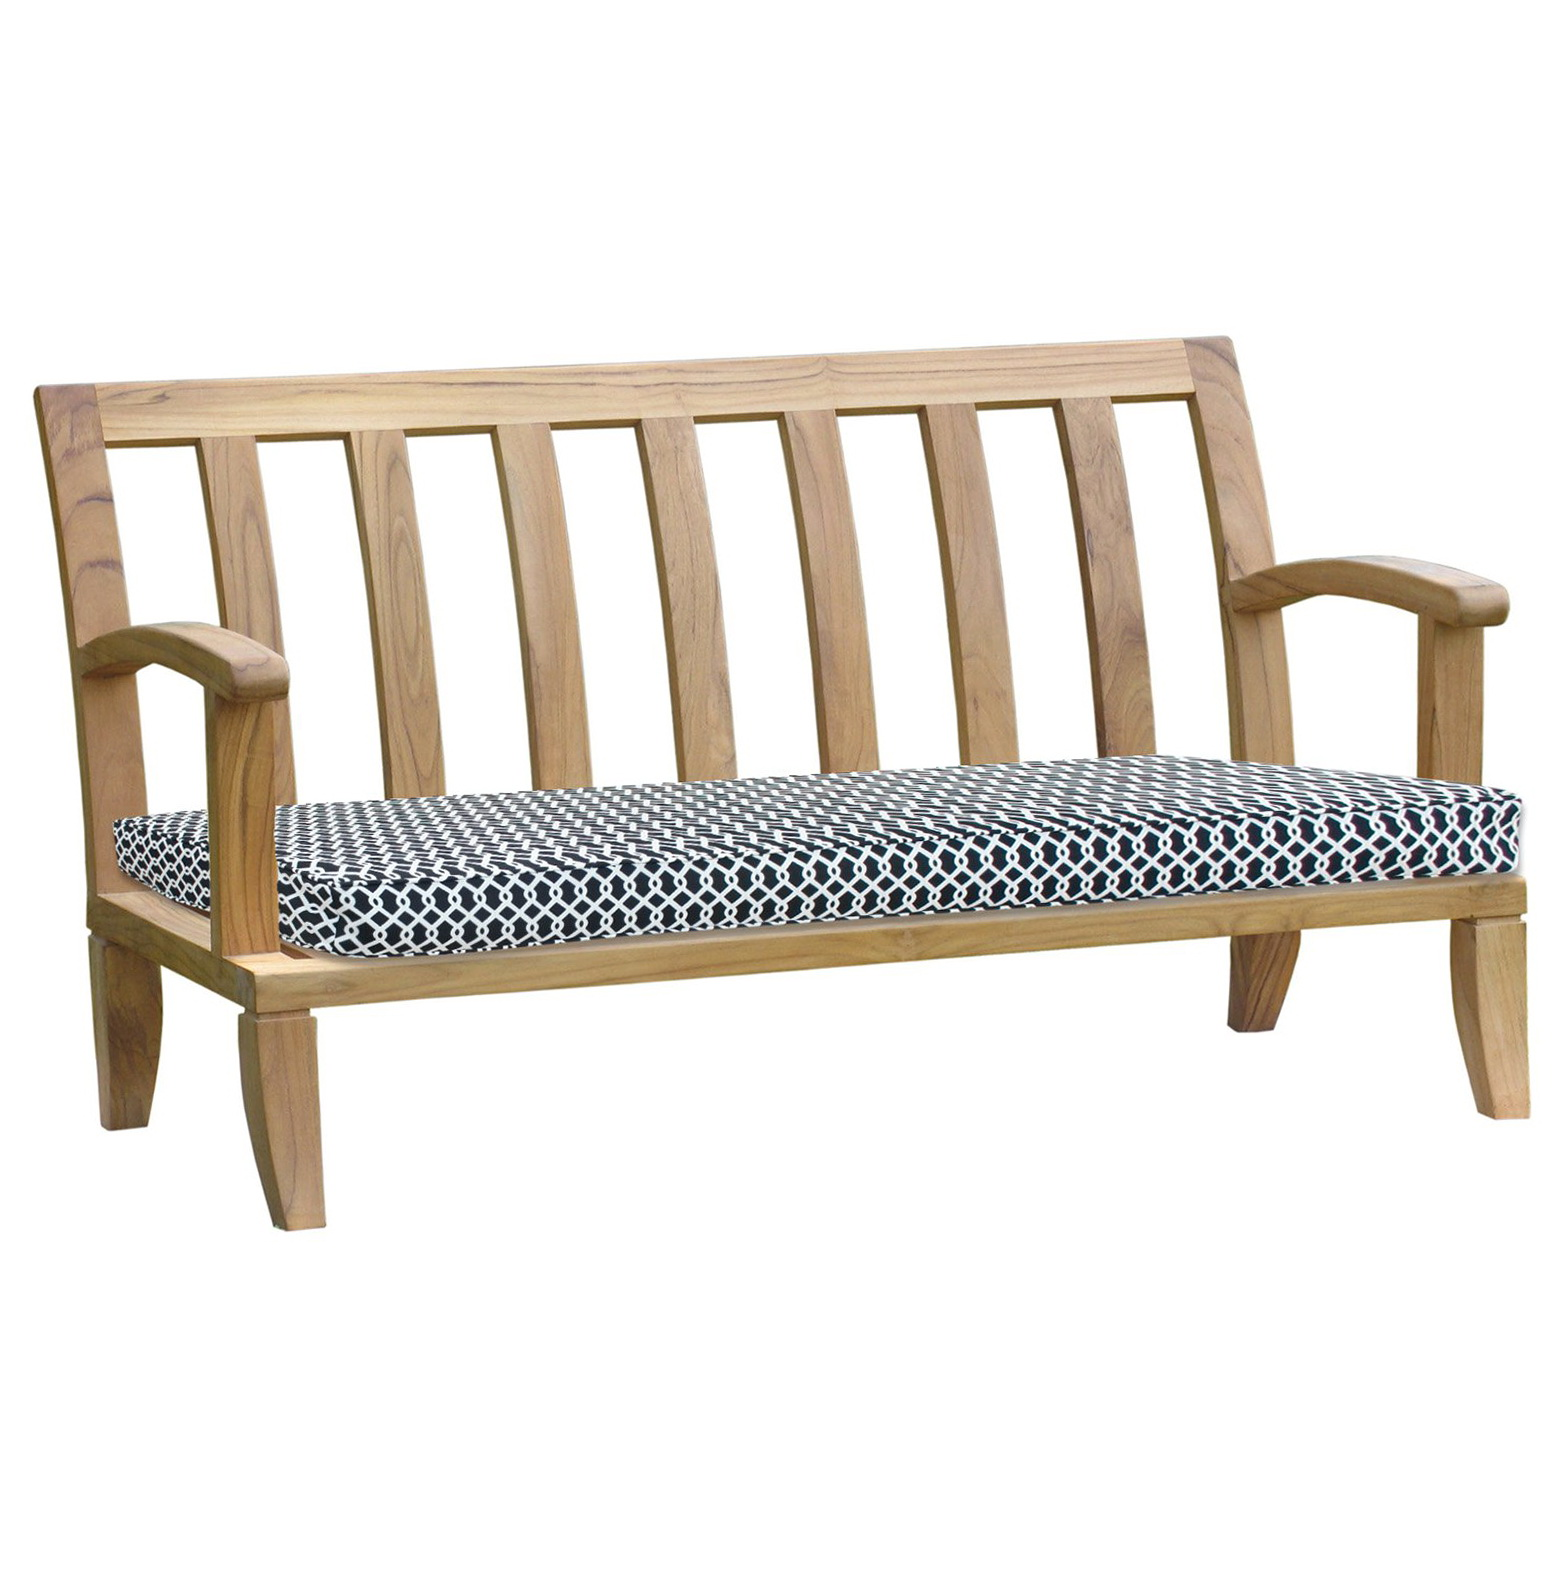 Outdoor bench seat cushions nz home design ideas Cheap outdoor bench cushions